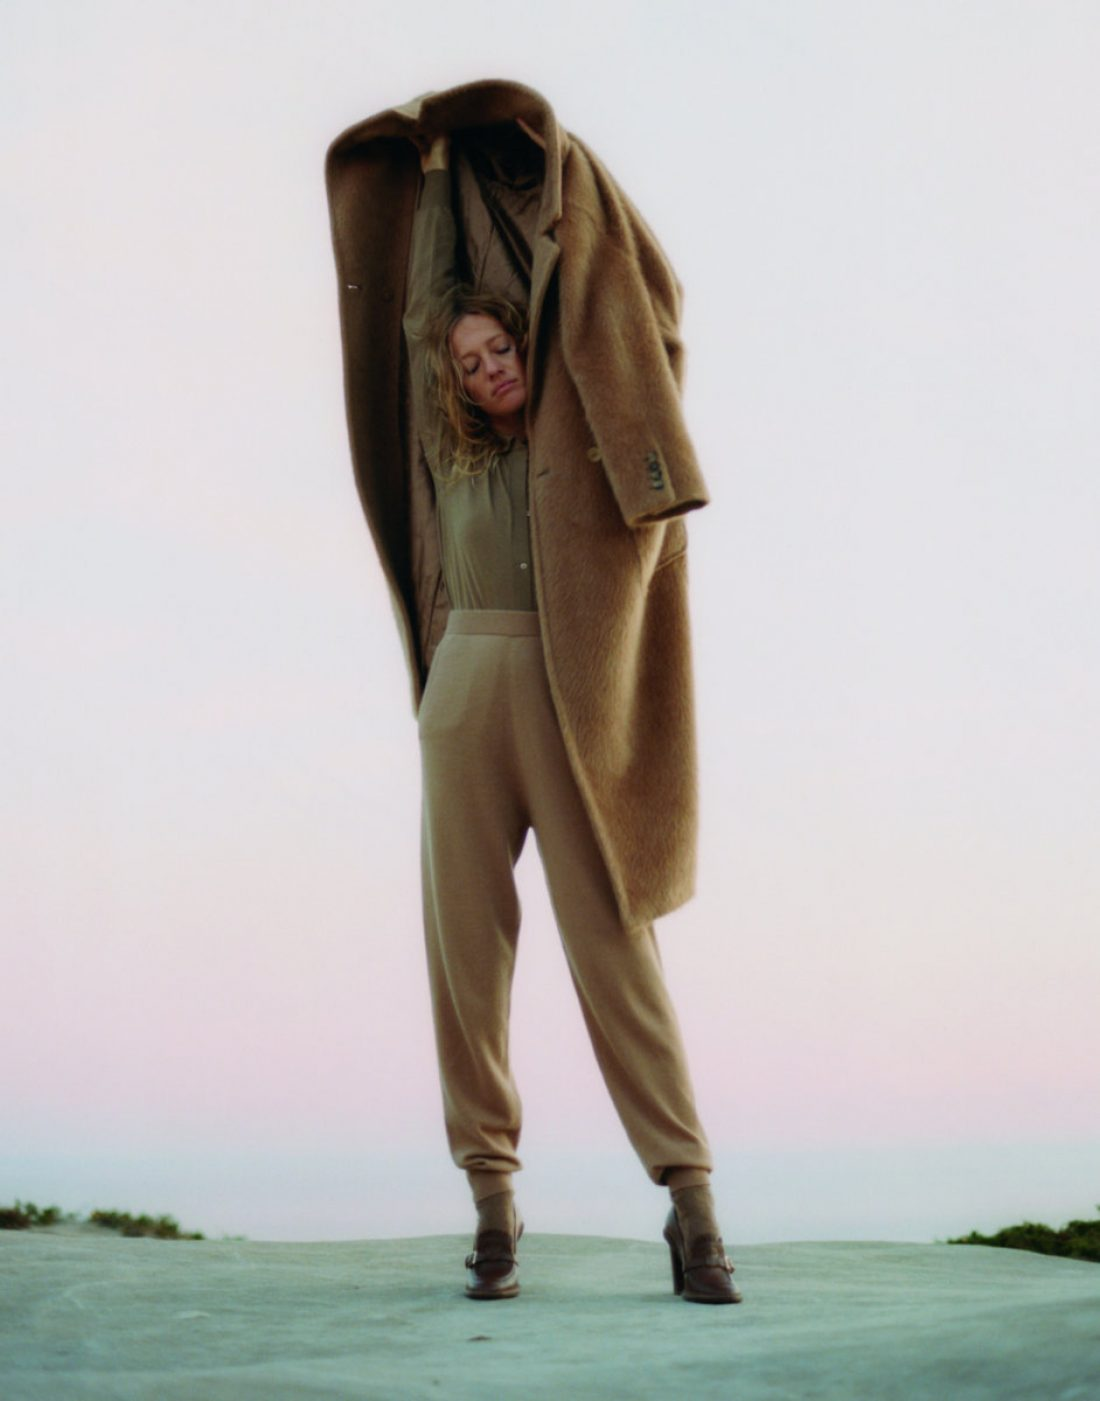 Zippora Seven photographed for Elle USA; Ph: Terence Connors; Fashion Marine Braunschvig; Cedric Michel; Tobias Sagneur